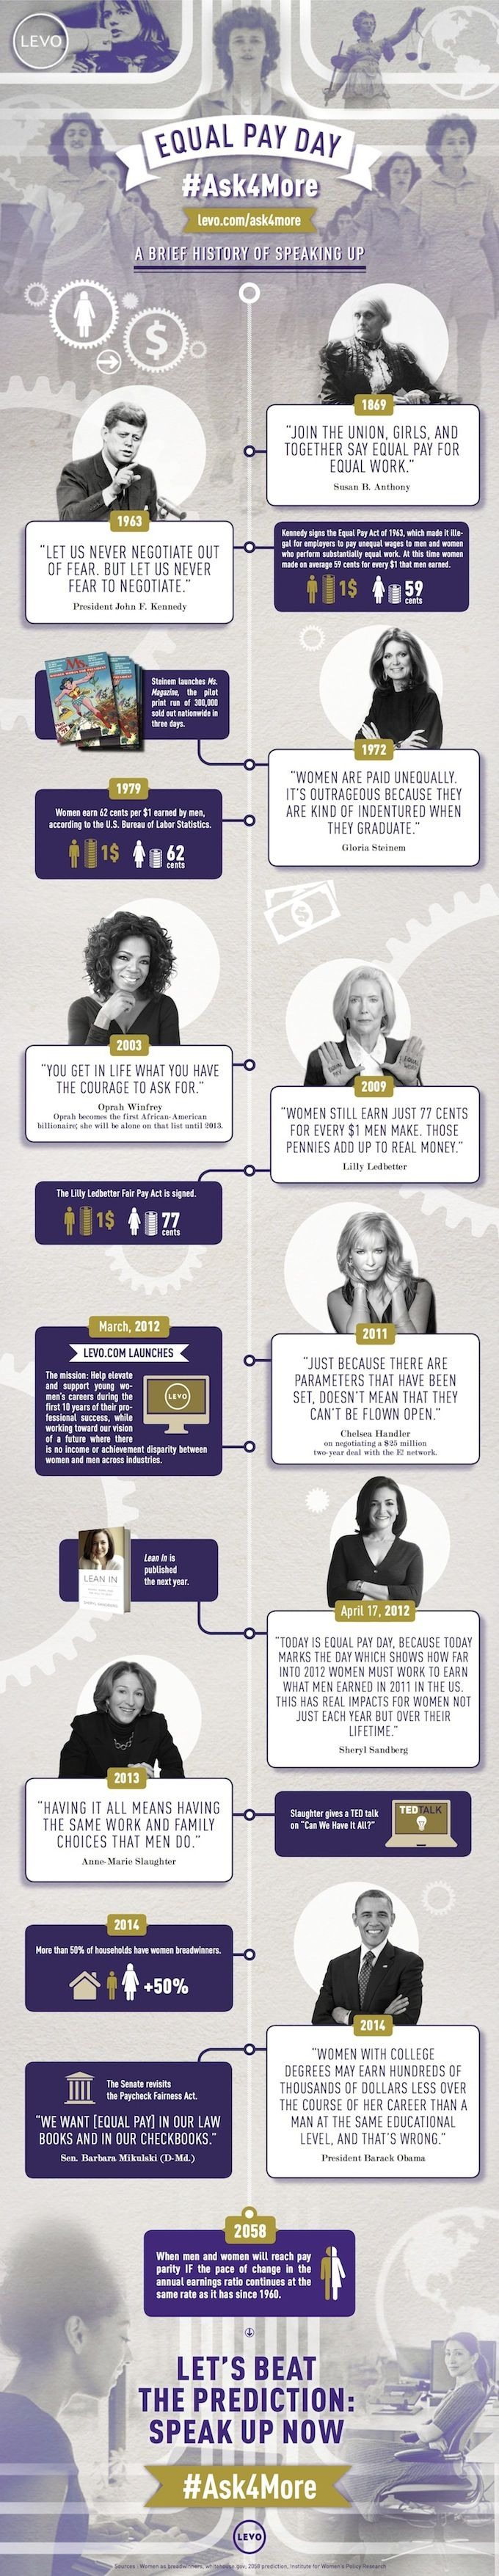 History of equal pay <3 Jamie McClean, Personal Stylist - Nordstrom Tysons Corner